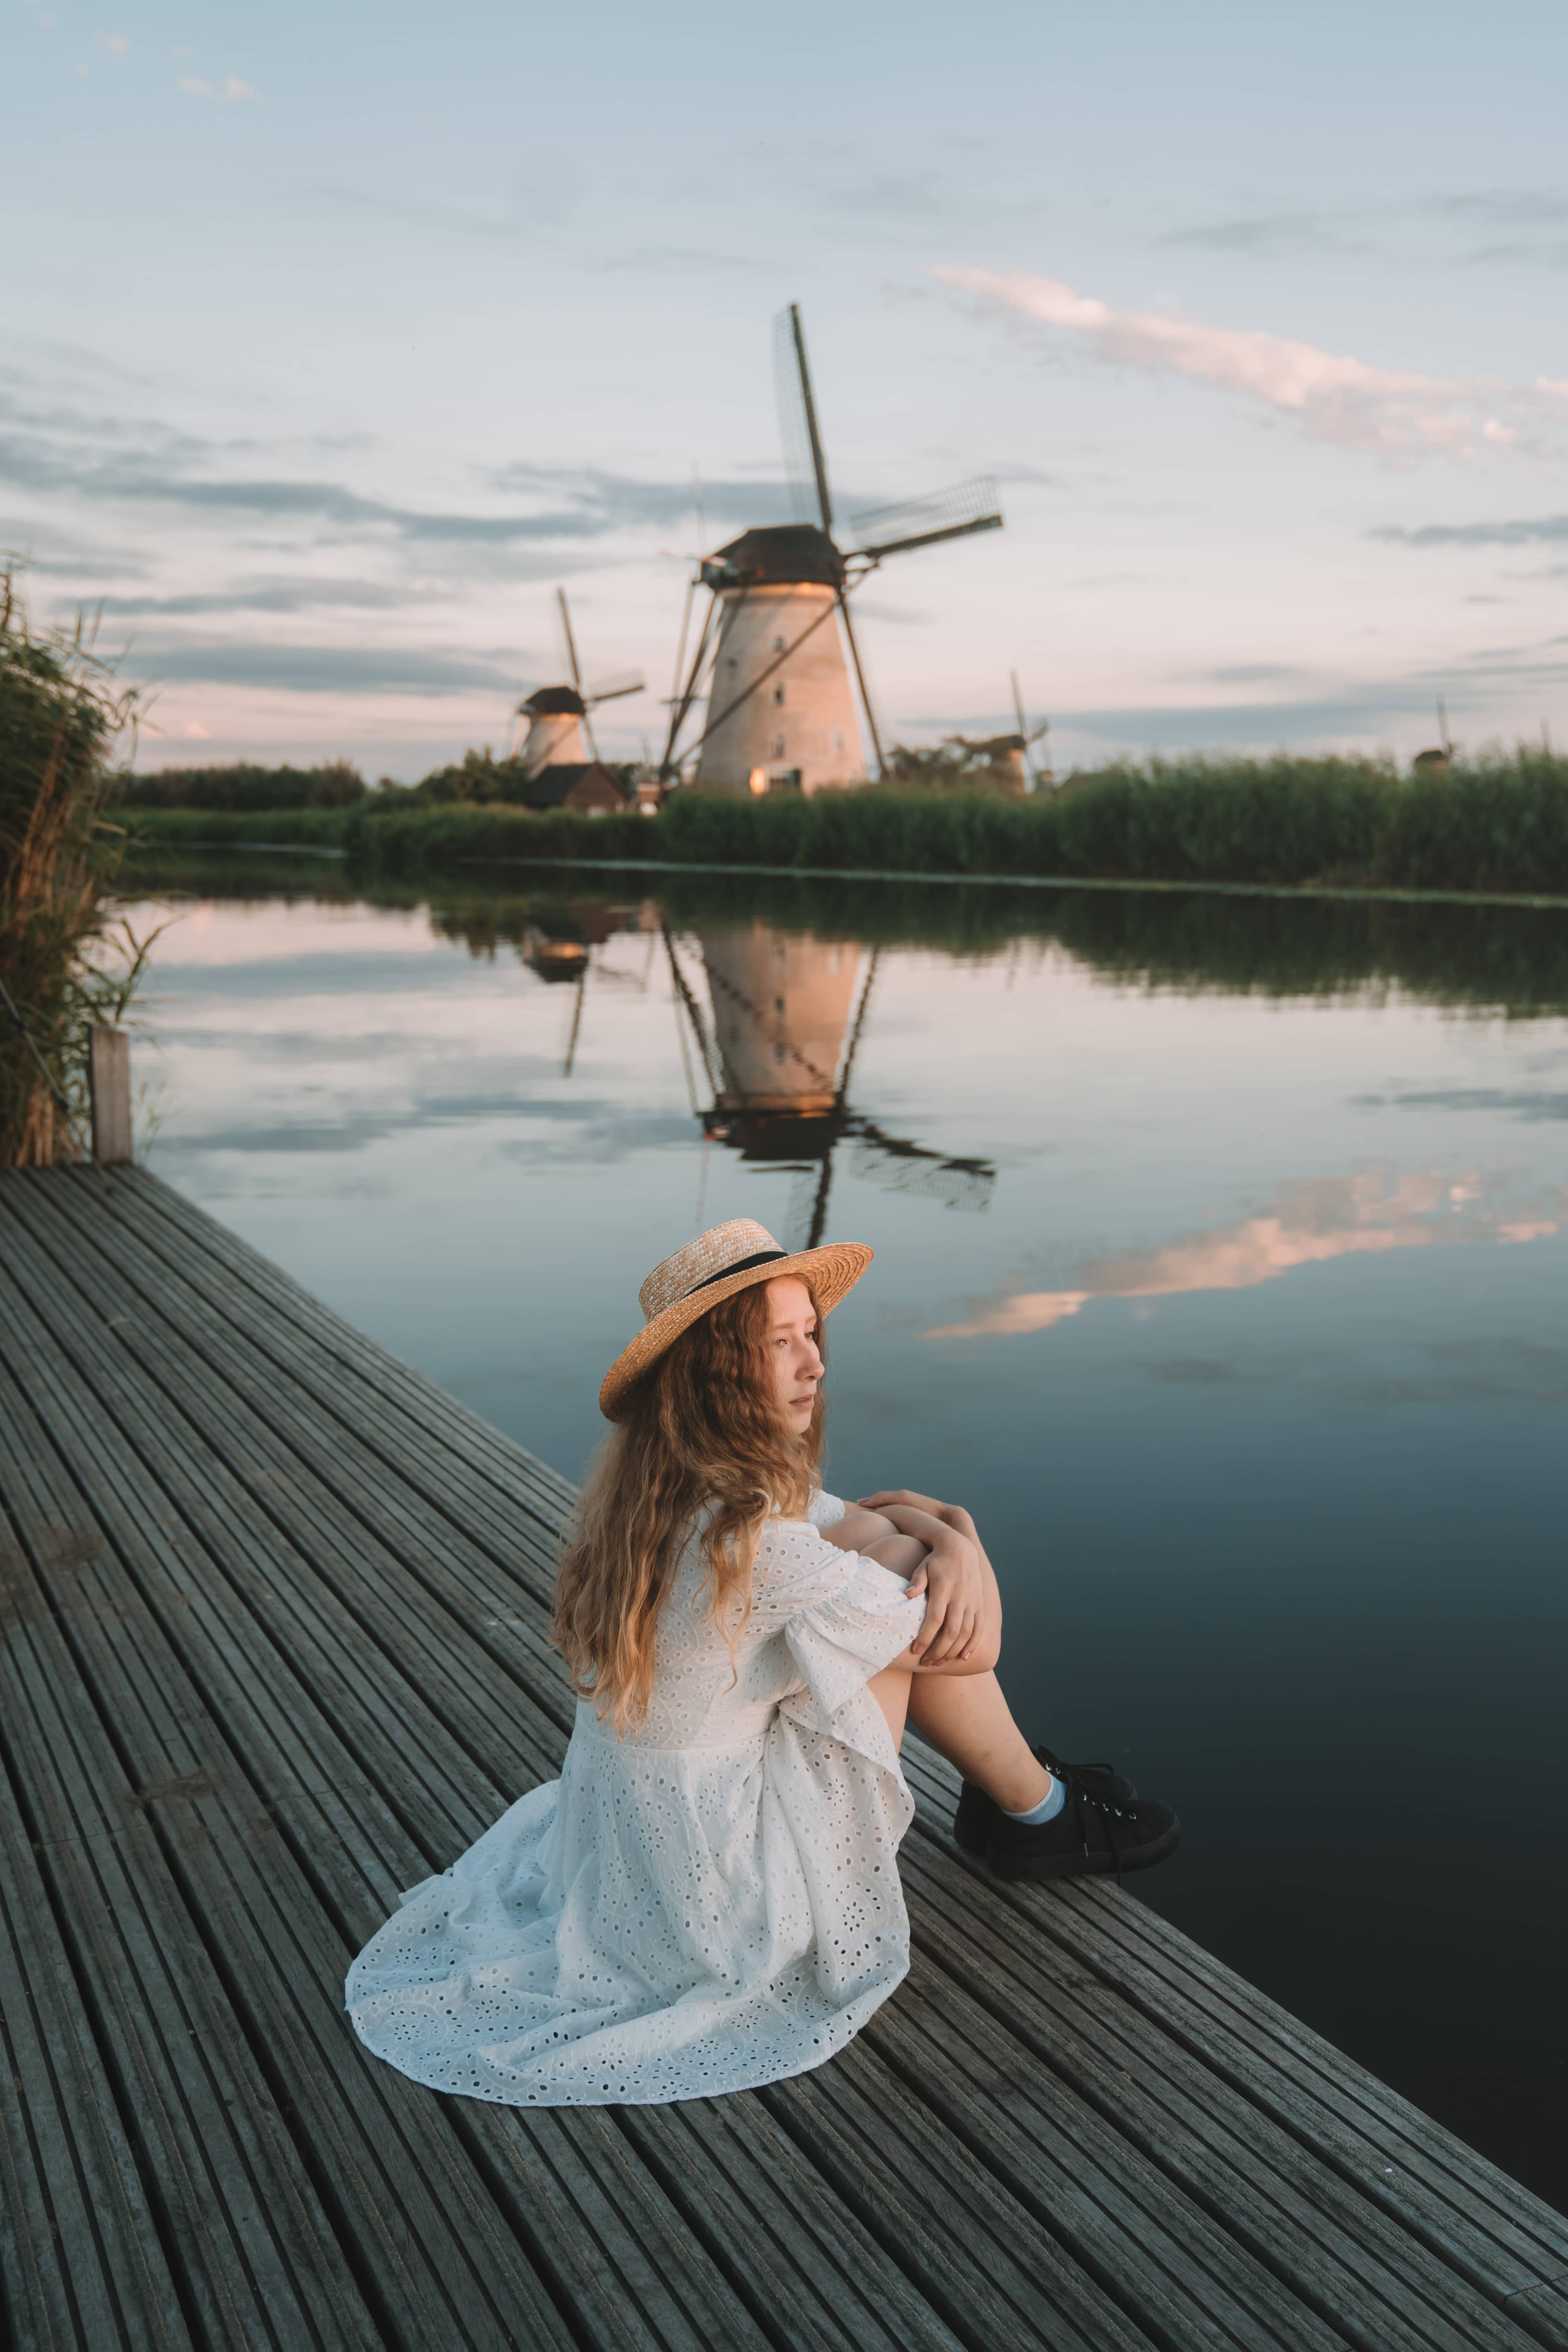 Girl in white dress wearing a hat sitting at the water in front of a windmill in Kinderdjik, Netherlands